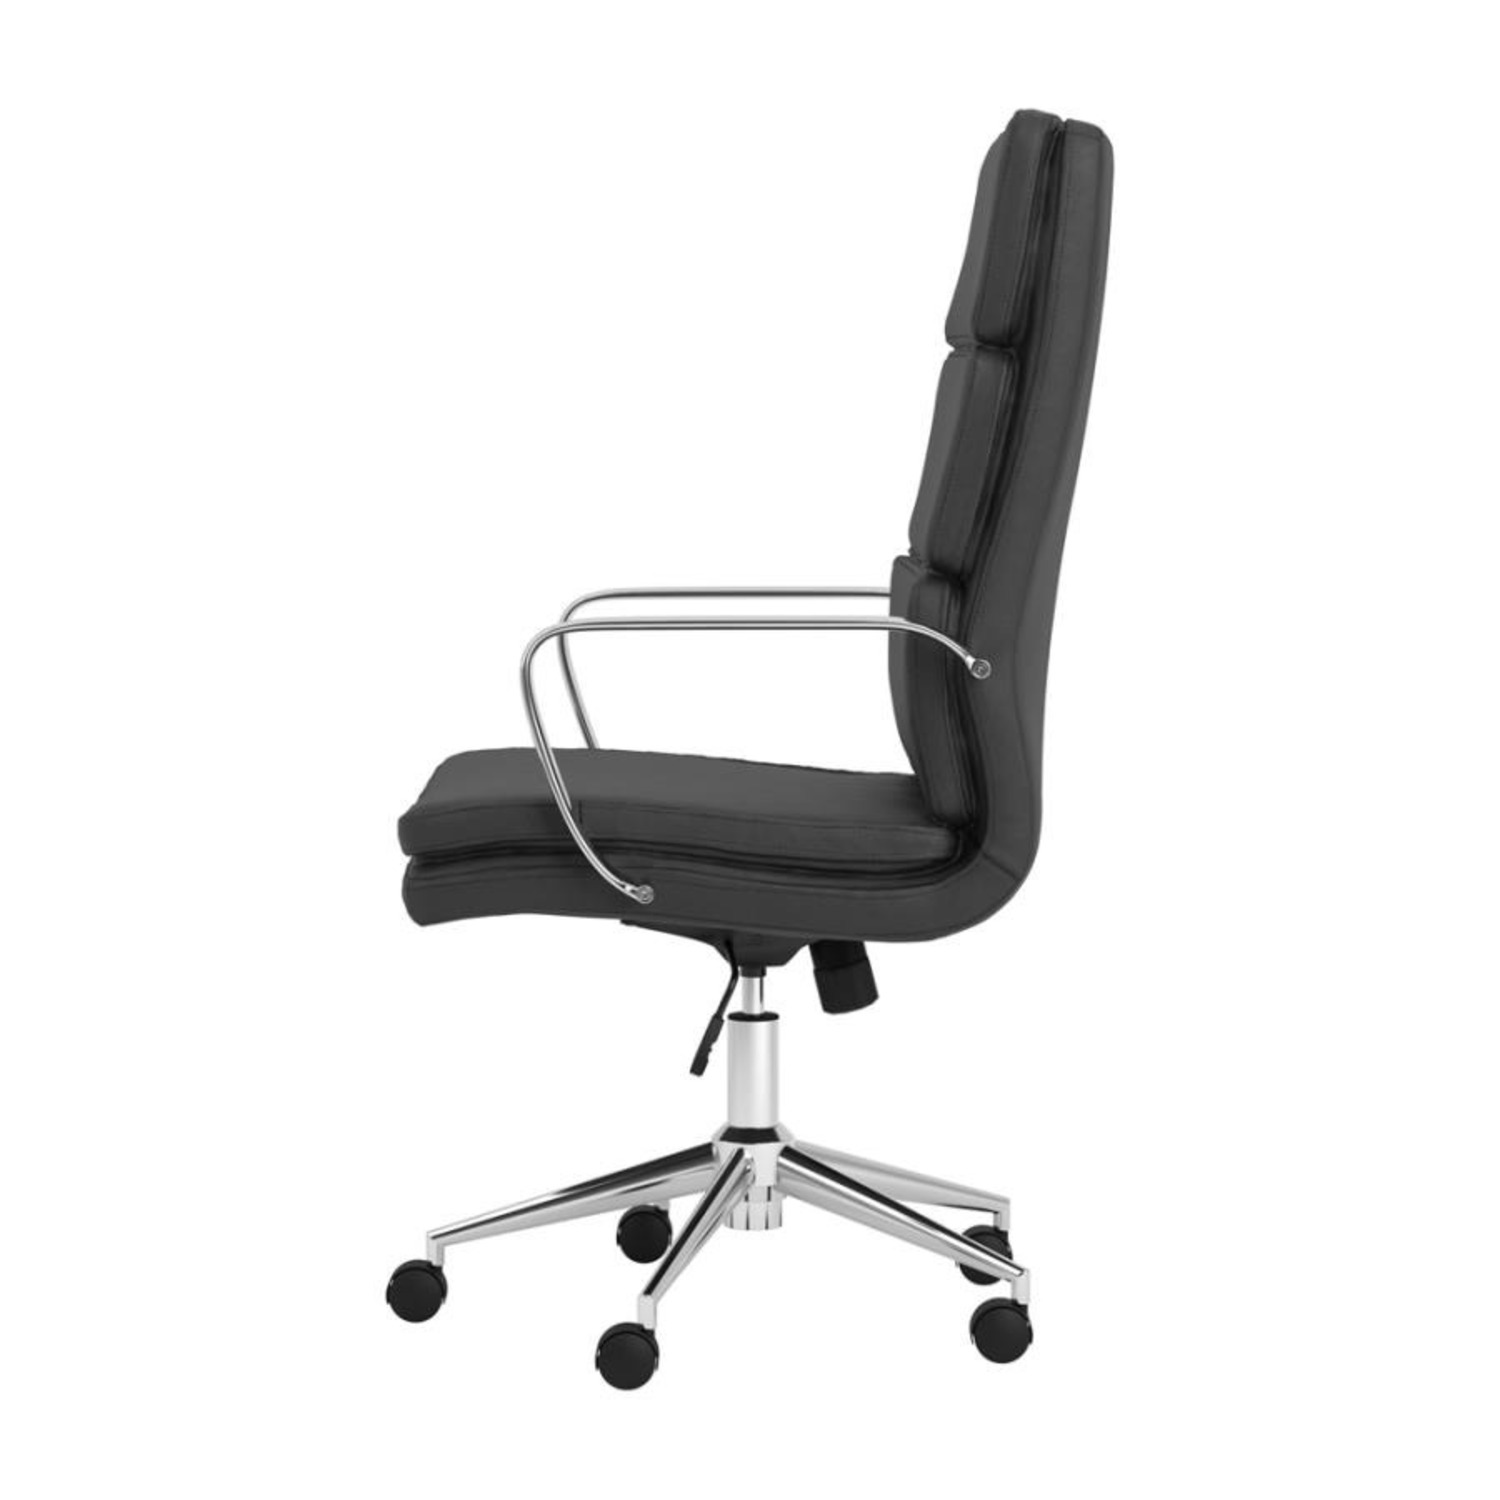 Office Chair In Black Cushion Leatherette Finish - image-2